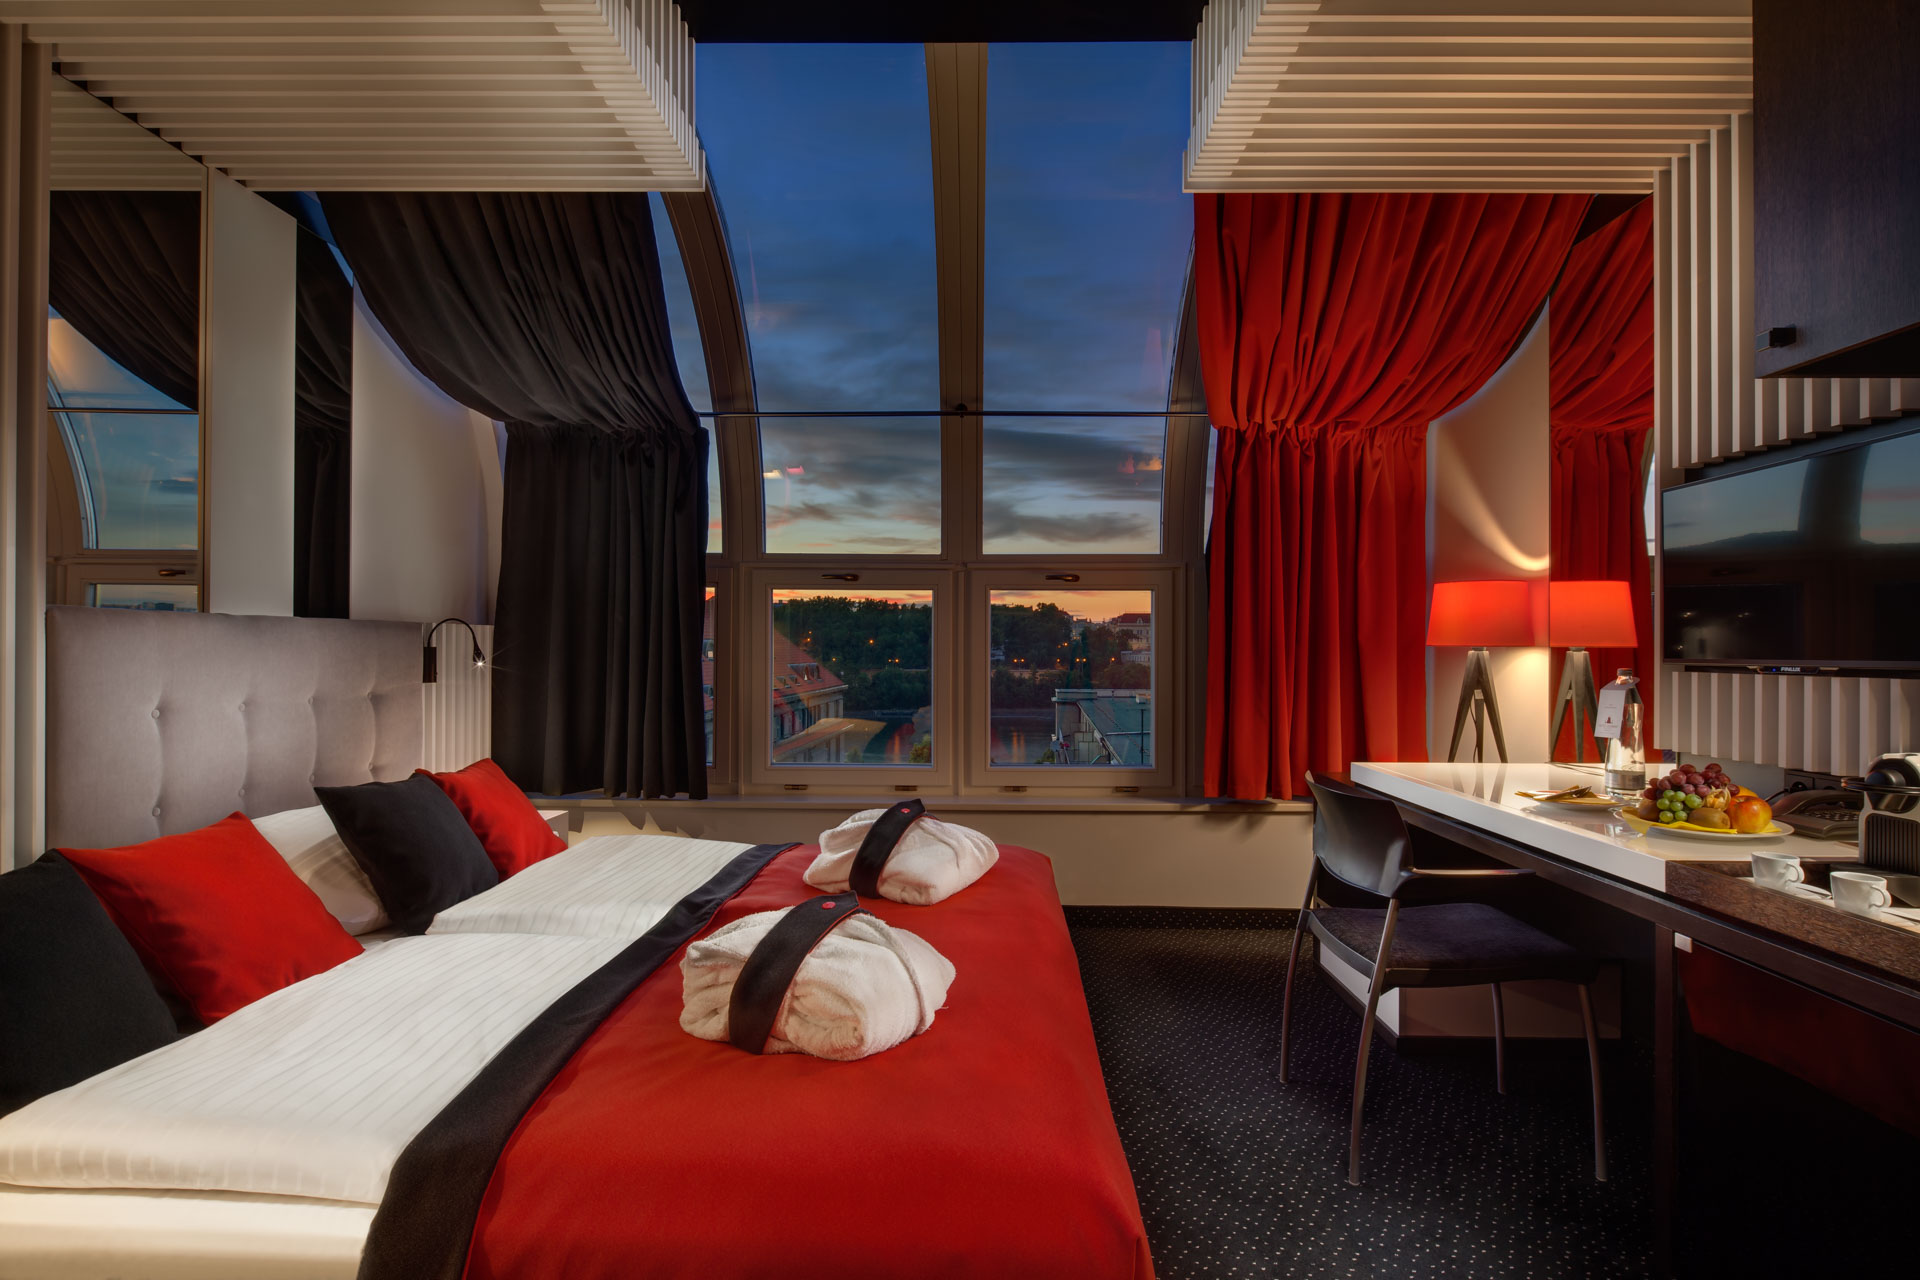 View on deluxe room with panorama windows showing a sunset sky at Hotel Clement Prague